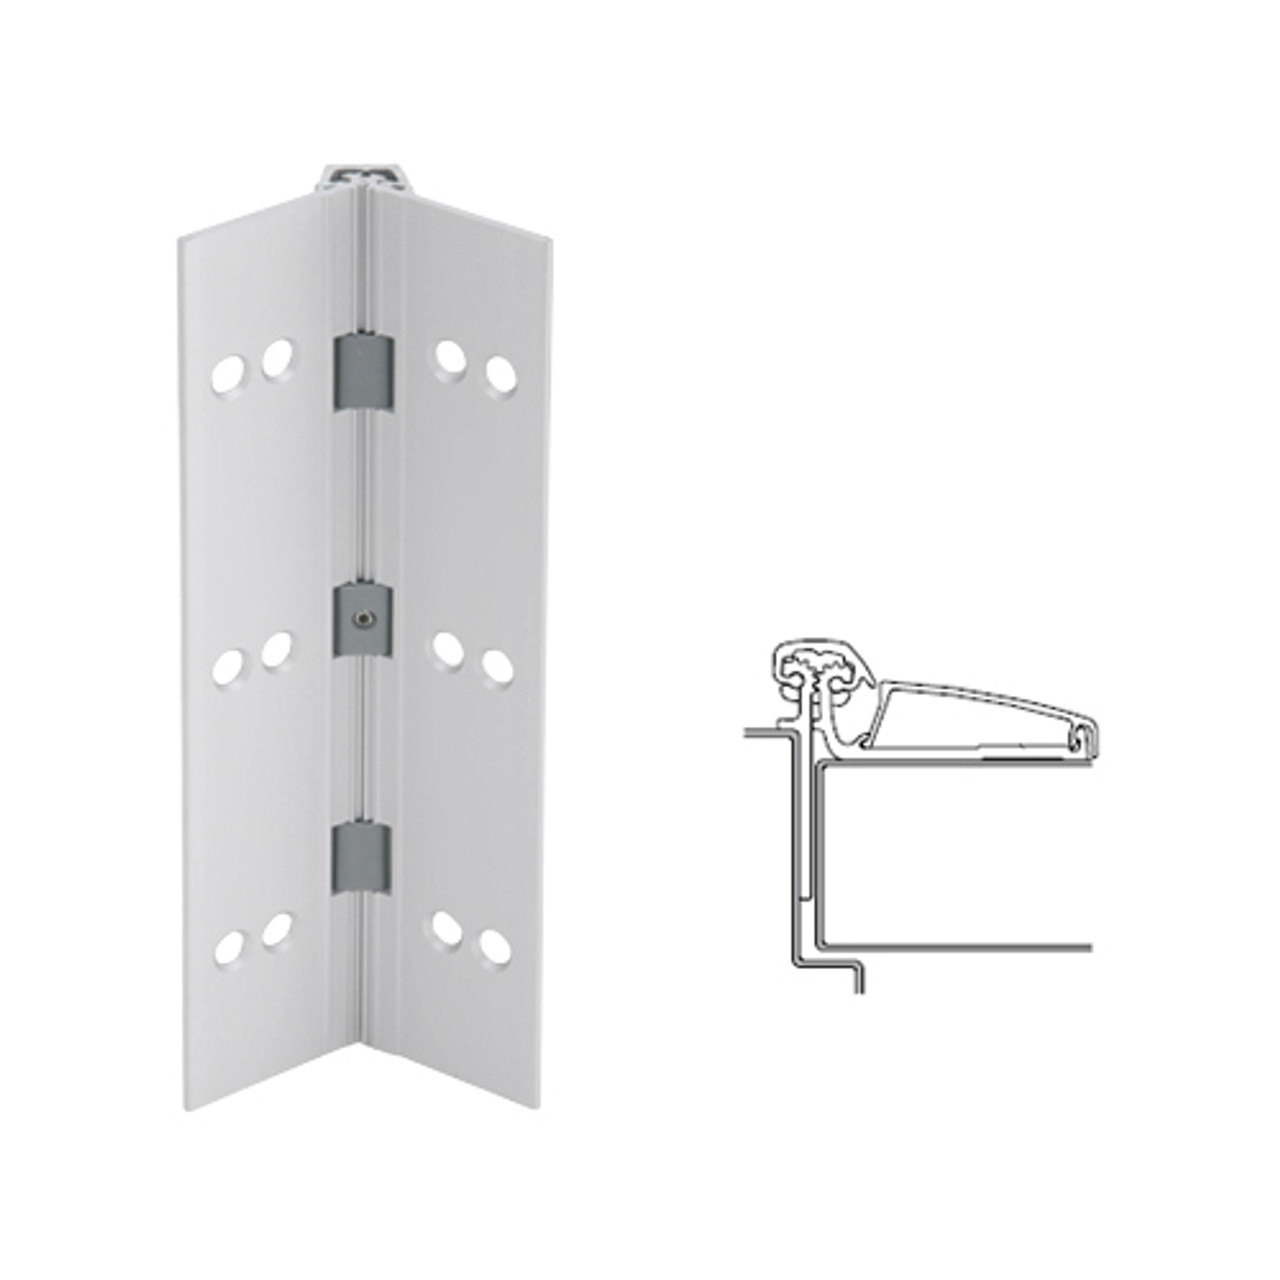 045XY-US28-83 IVES Adjustable Half Surface Continuous Geared Hinges in Satin Aluminum